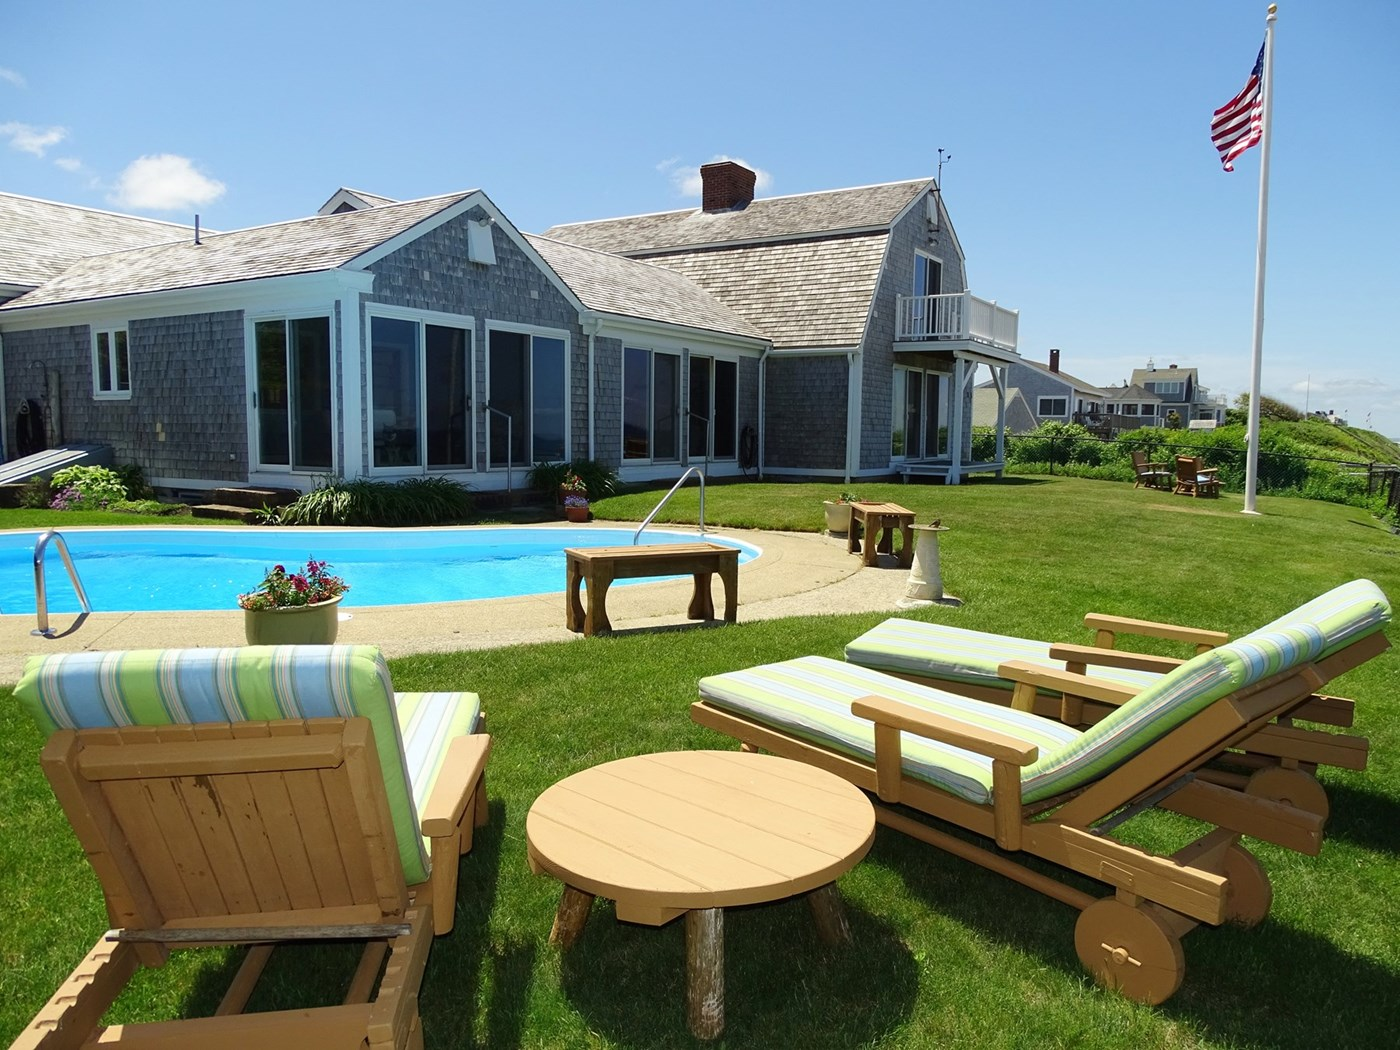 Dennis Vacation Rental home in Cape Cod MA, On private beach